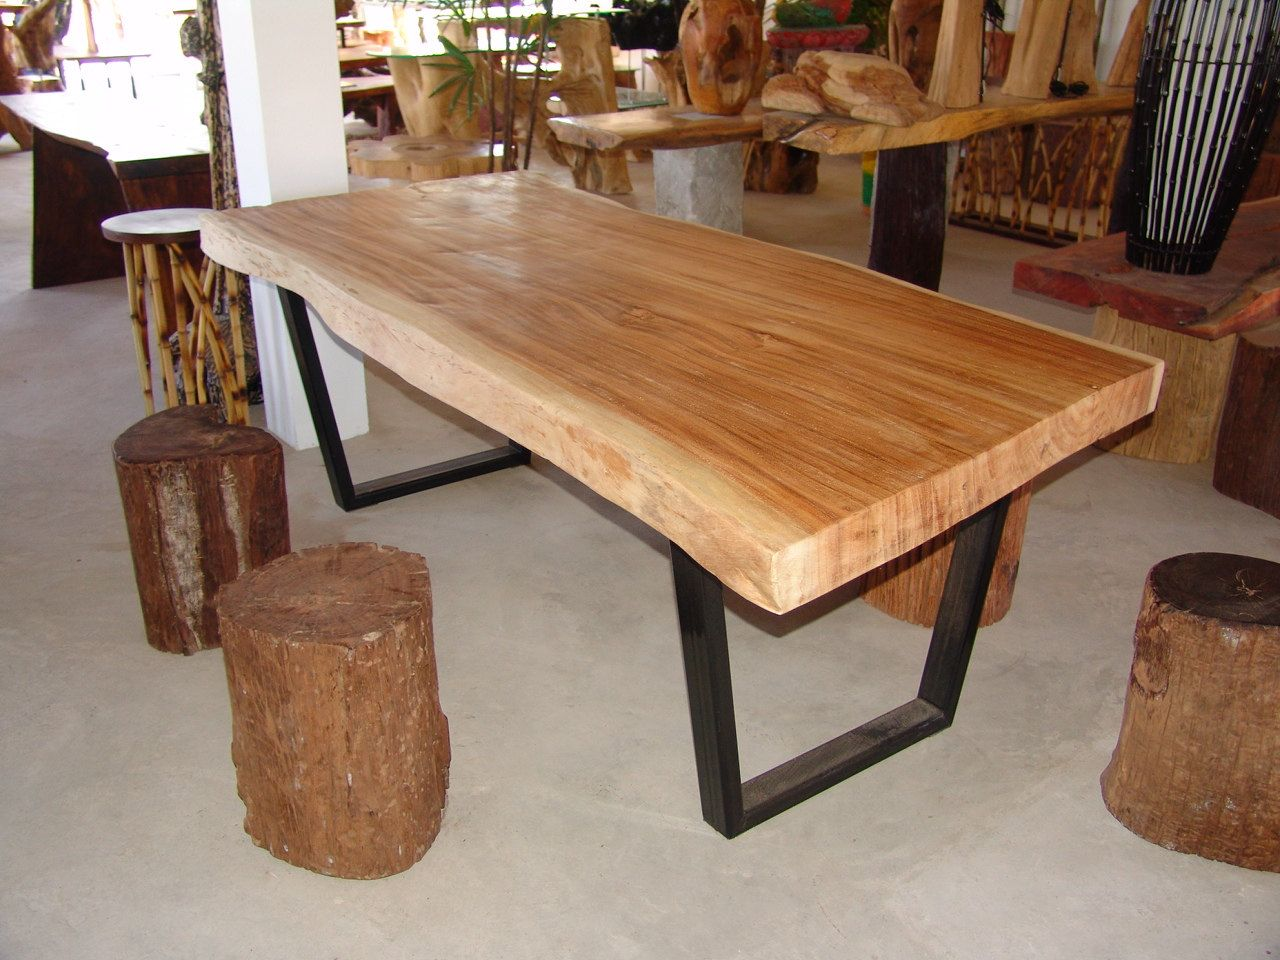 Dining table reclaimed solid slab acacia wood extremely by flowbkk 5600 00